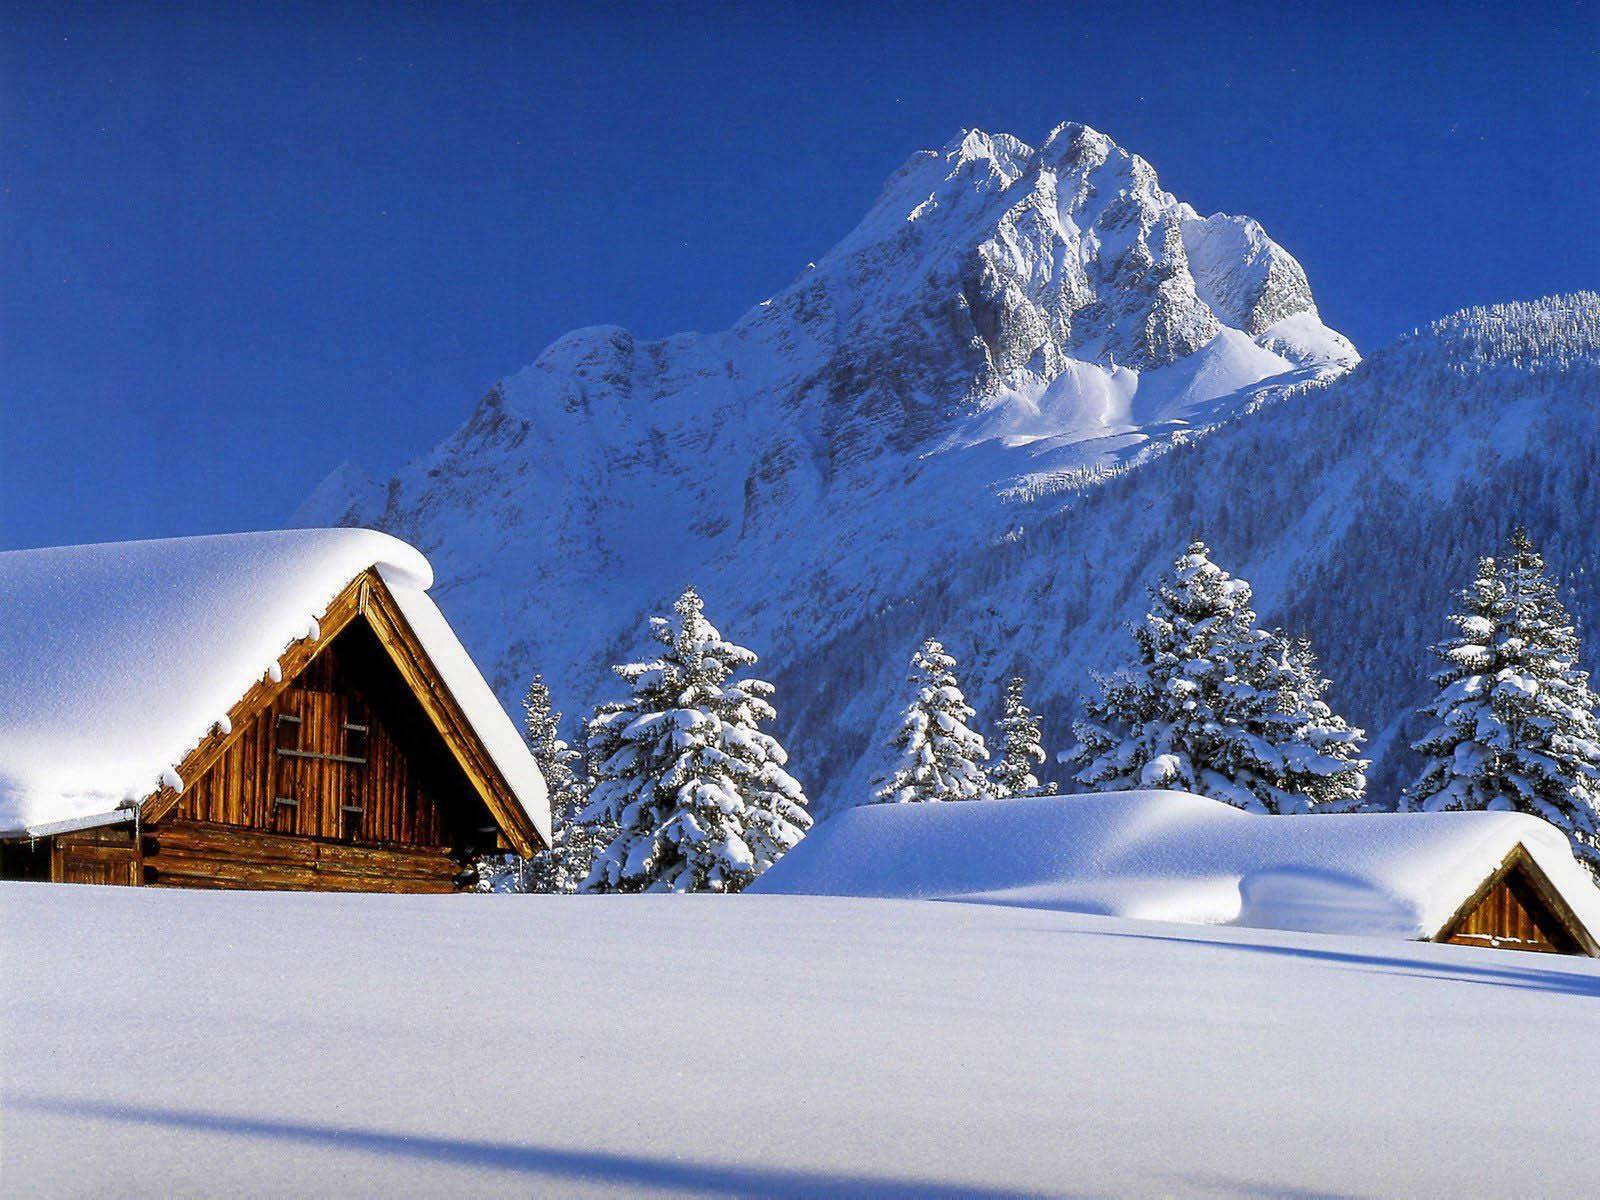 Snow wallpapers wallpaper cave - Snowy wallpaper ...